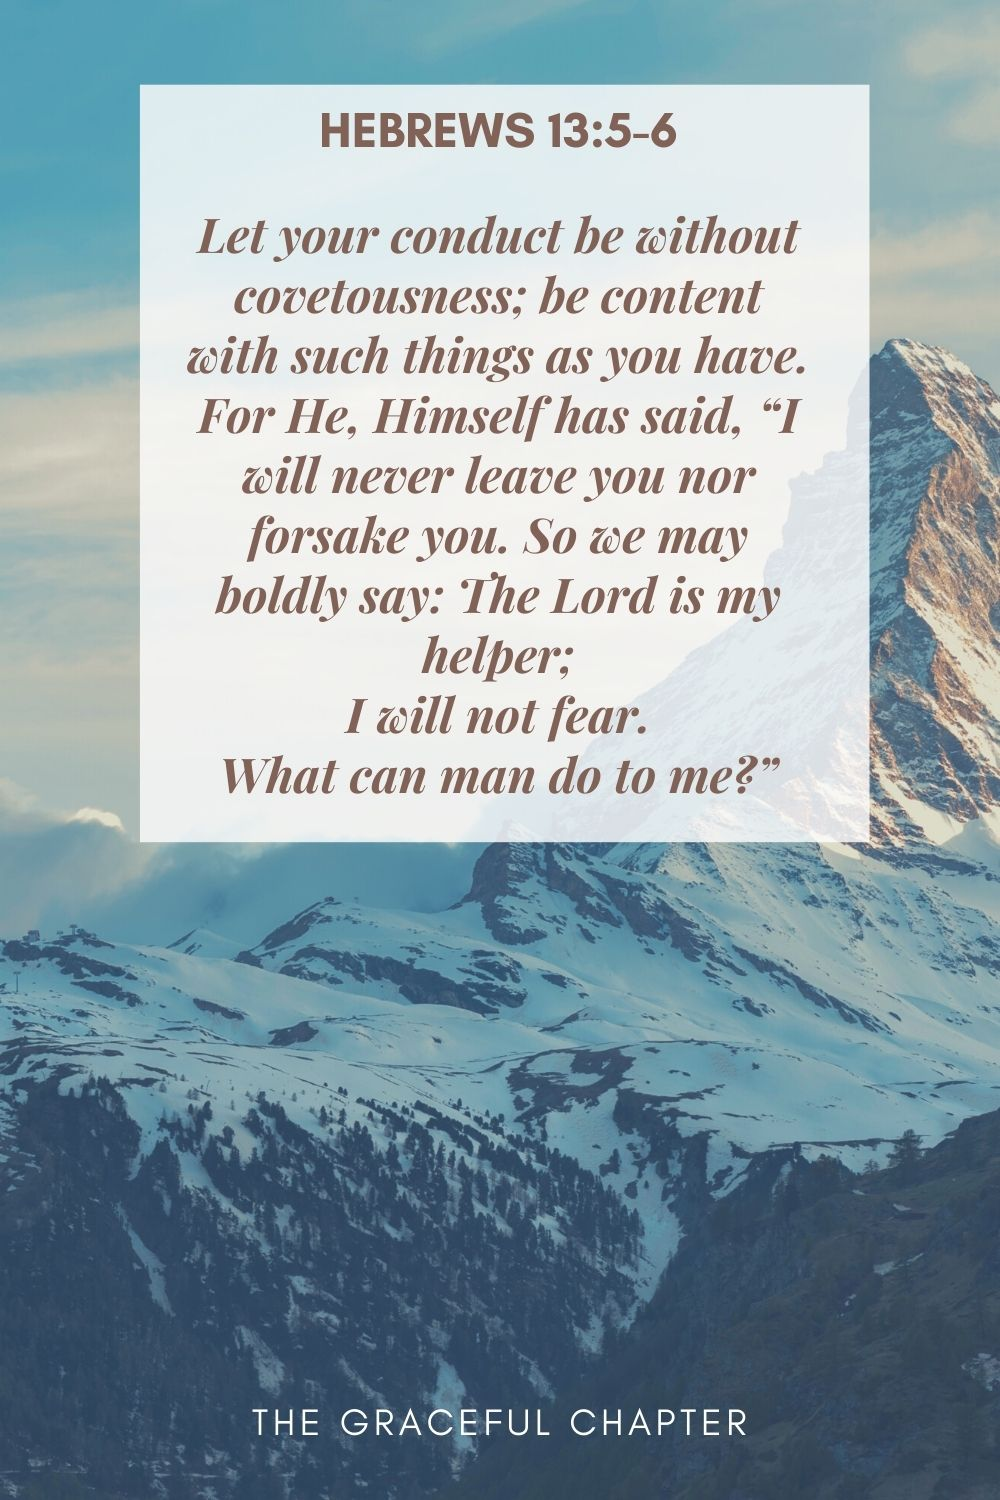 """Let your conduct be without covetousness; be content with such things as you have. For He, Himself has said, """"I will never leave you nor forsake you. So we may boldly say: The Lord is my helper; I will not fear. What can man do to me?"""" Hebrews 13:5-6"""